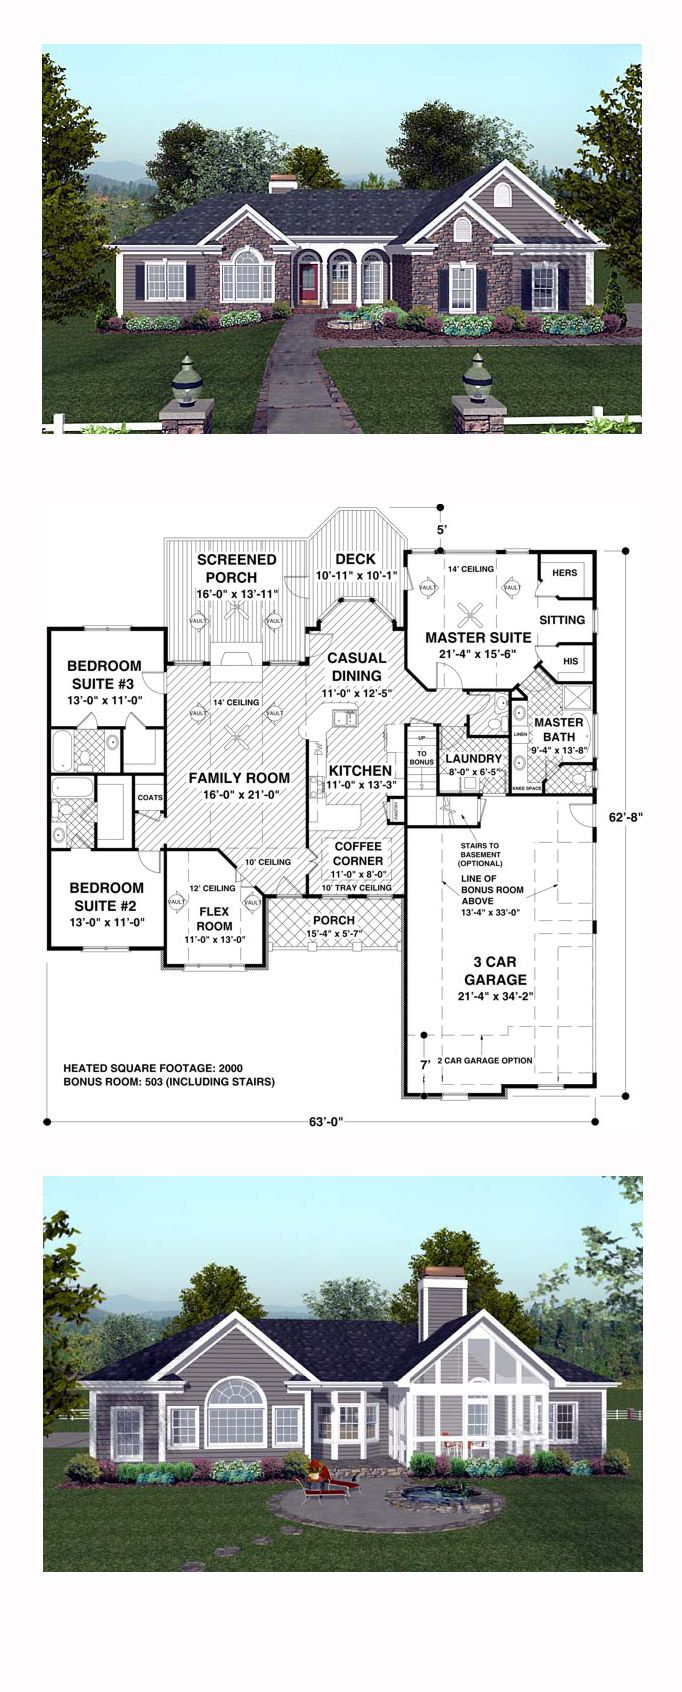 Craftsman house plan 74811 total living area 2000 sq ft for 2000 sq ft craftsman house plans